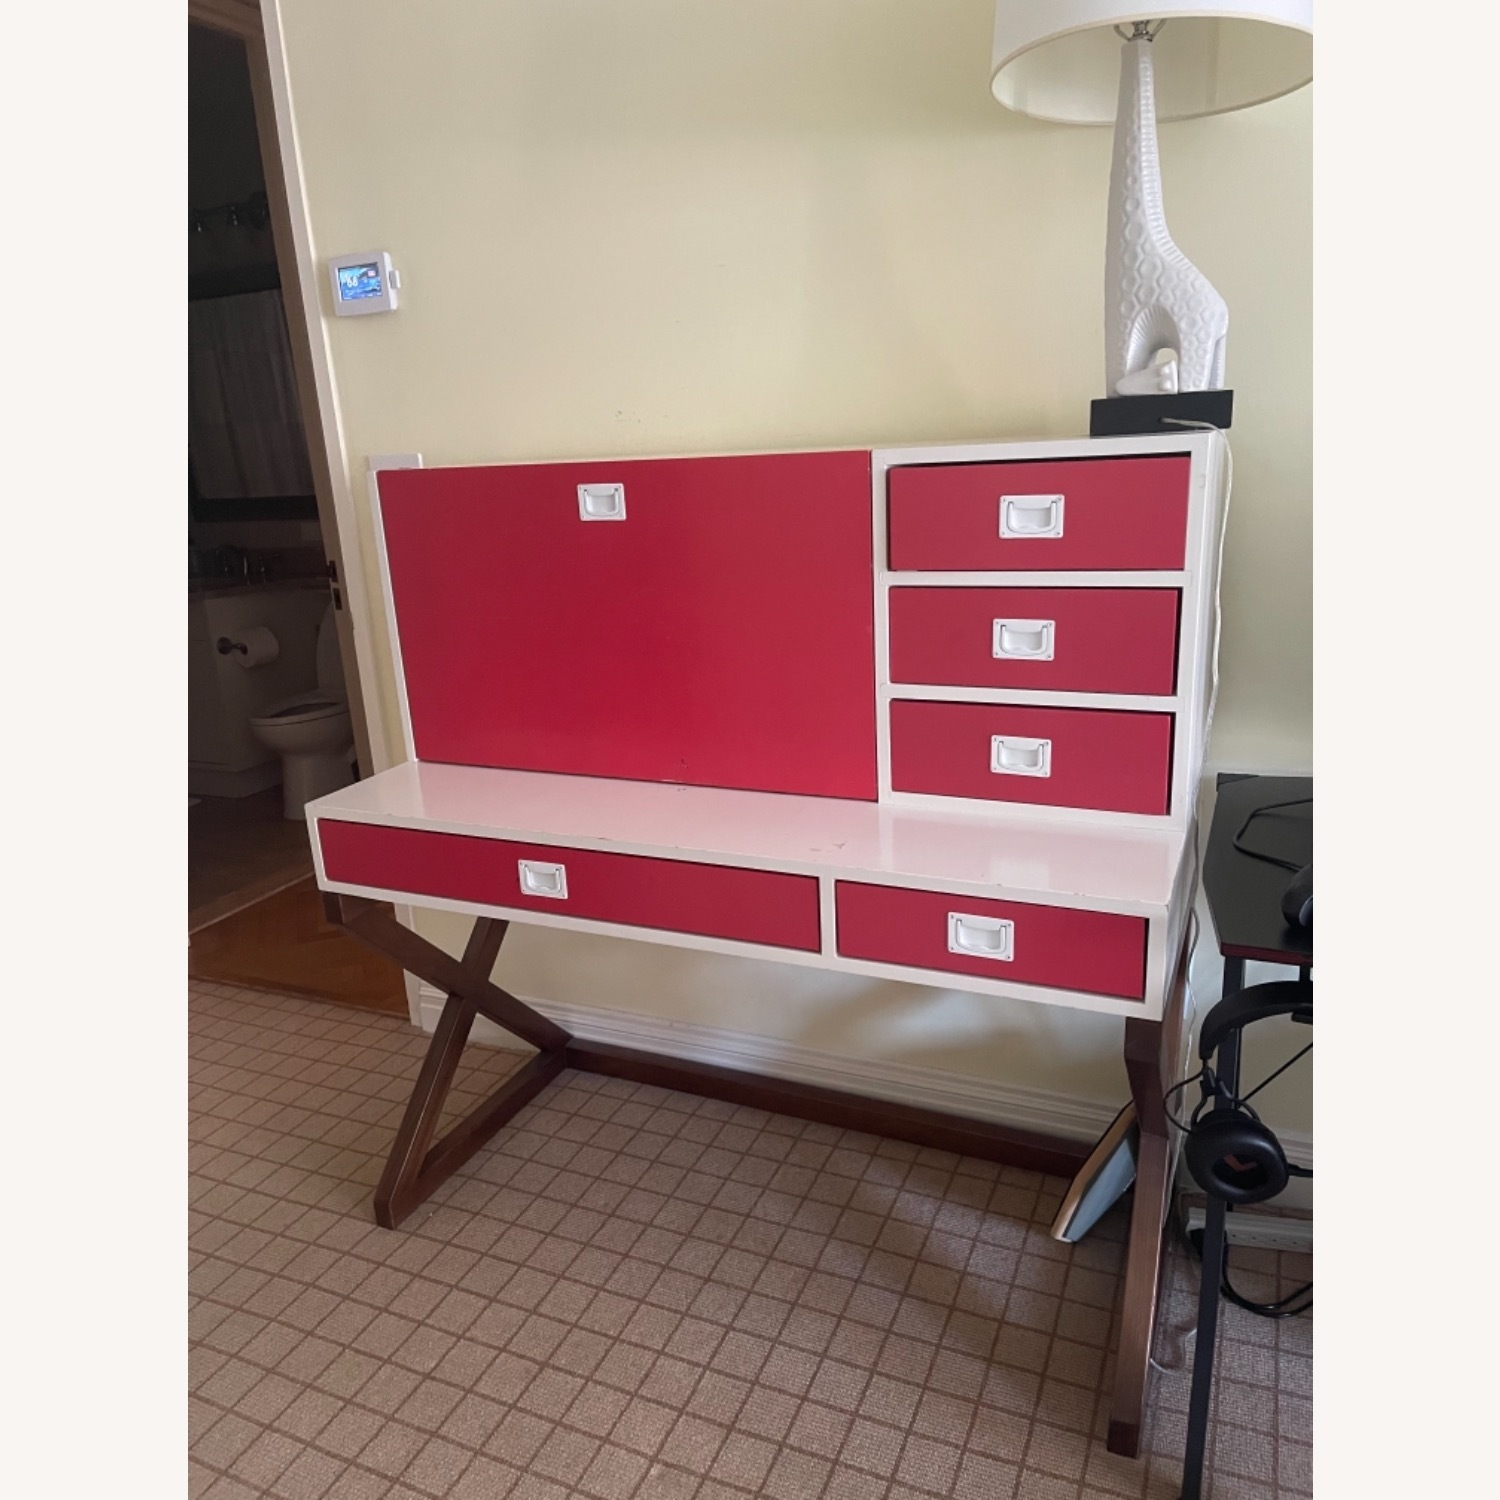 DucDuc Red and White Desk with Walnut Finish - image-1